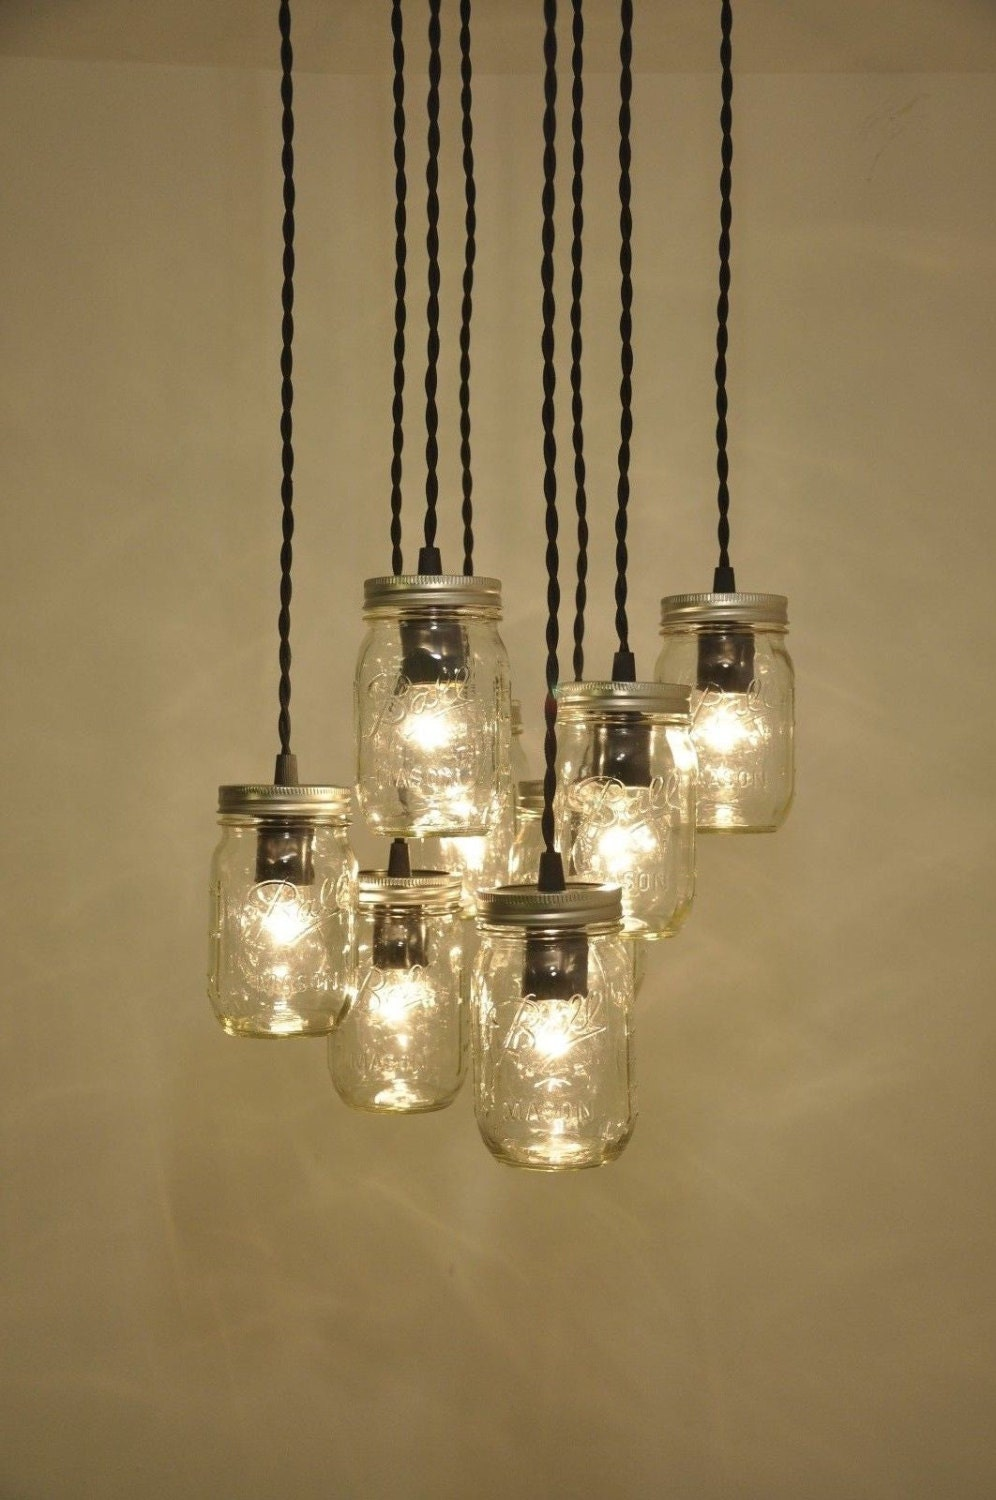 mason jar chandelier pendant light fixture 8 jars beautiful. Black Bedroom Furniture Sets. Home Design Ideas